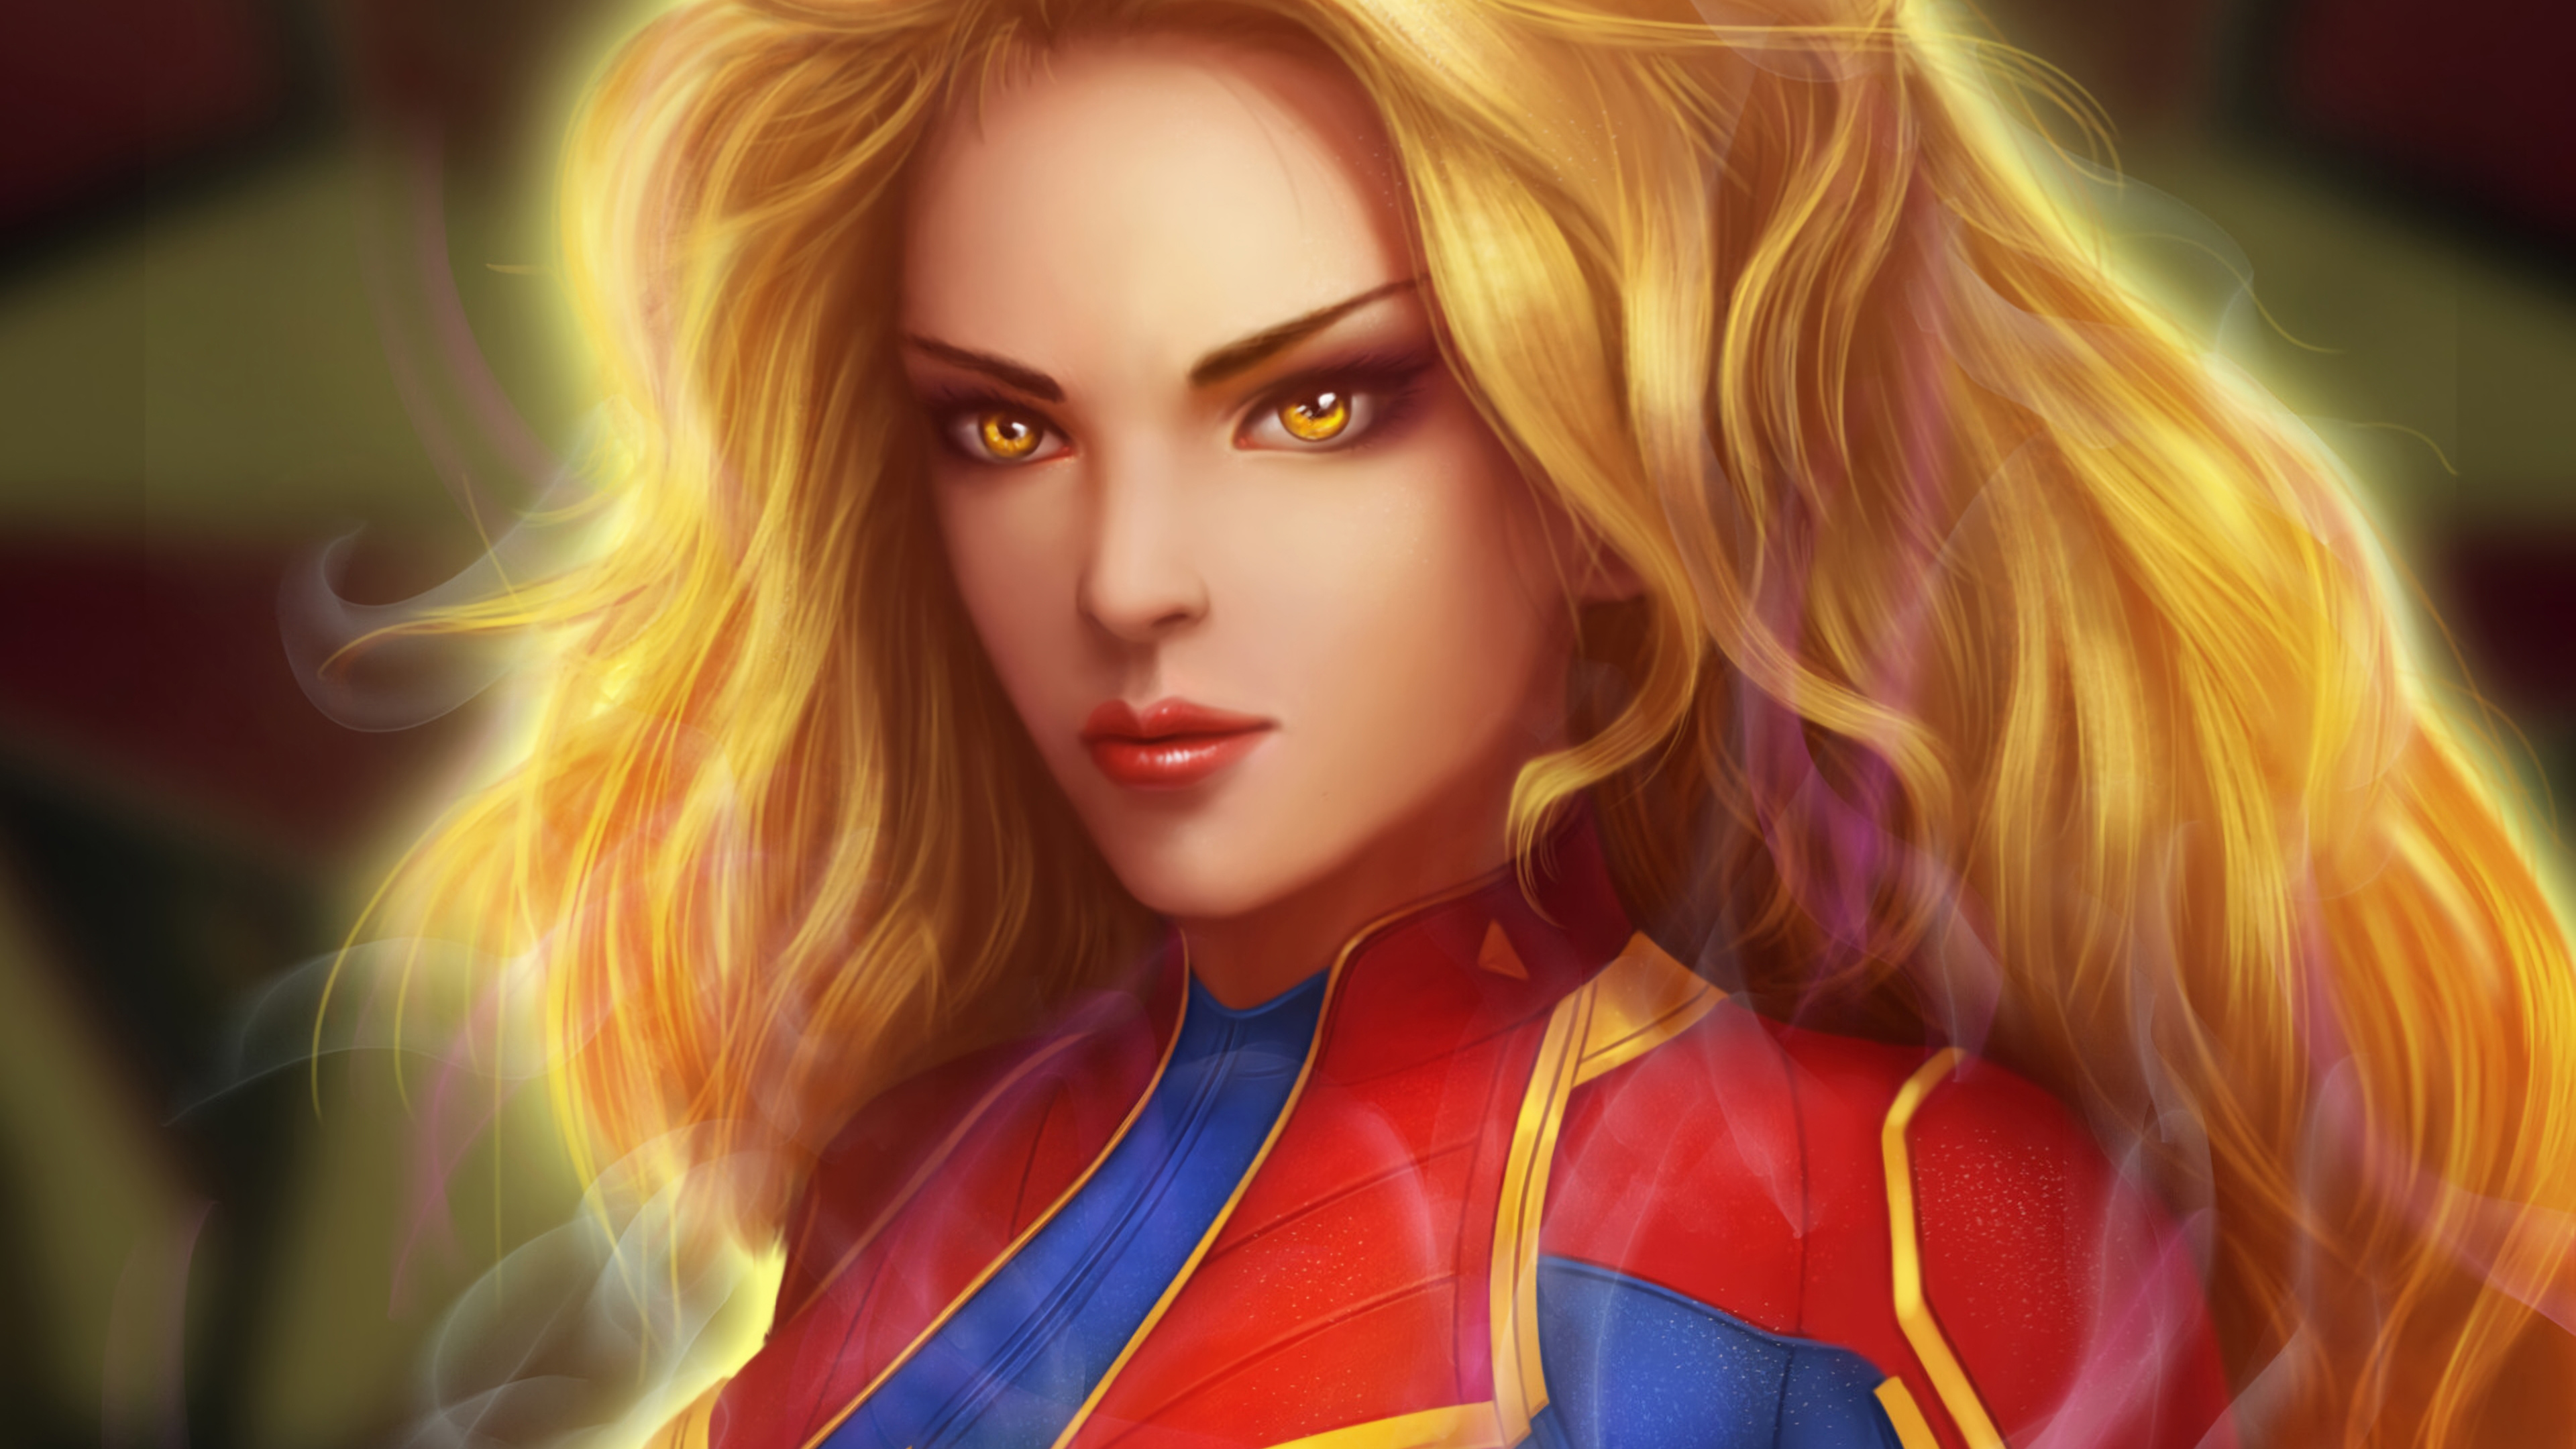 captain marvel close 1568055237 - Captain Marvel Close - superheroes wallpapers, marvel wallpapers, hd-wallpapers, captain marvel wallpapers, artstation wallpapers, 4k-wallpapers